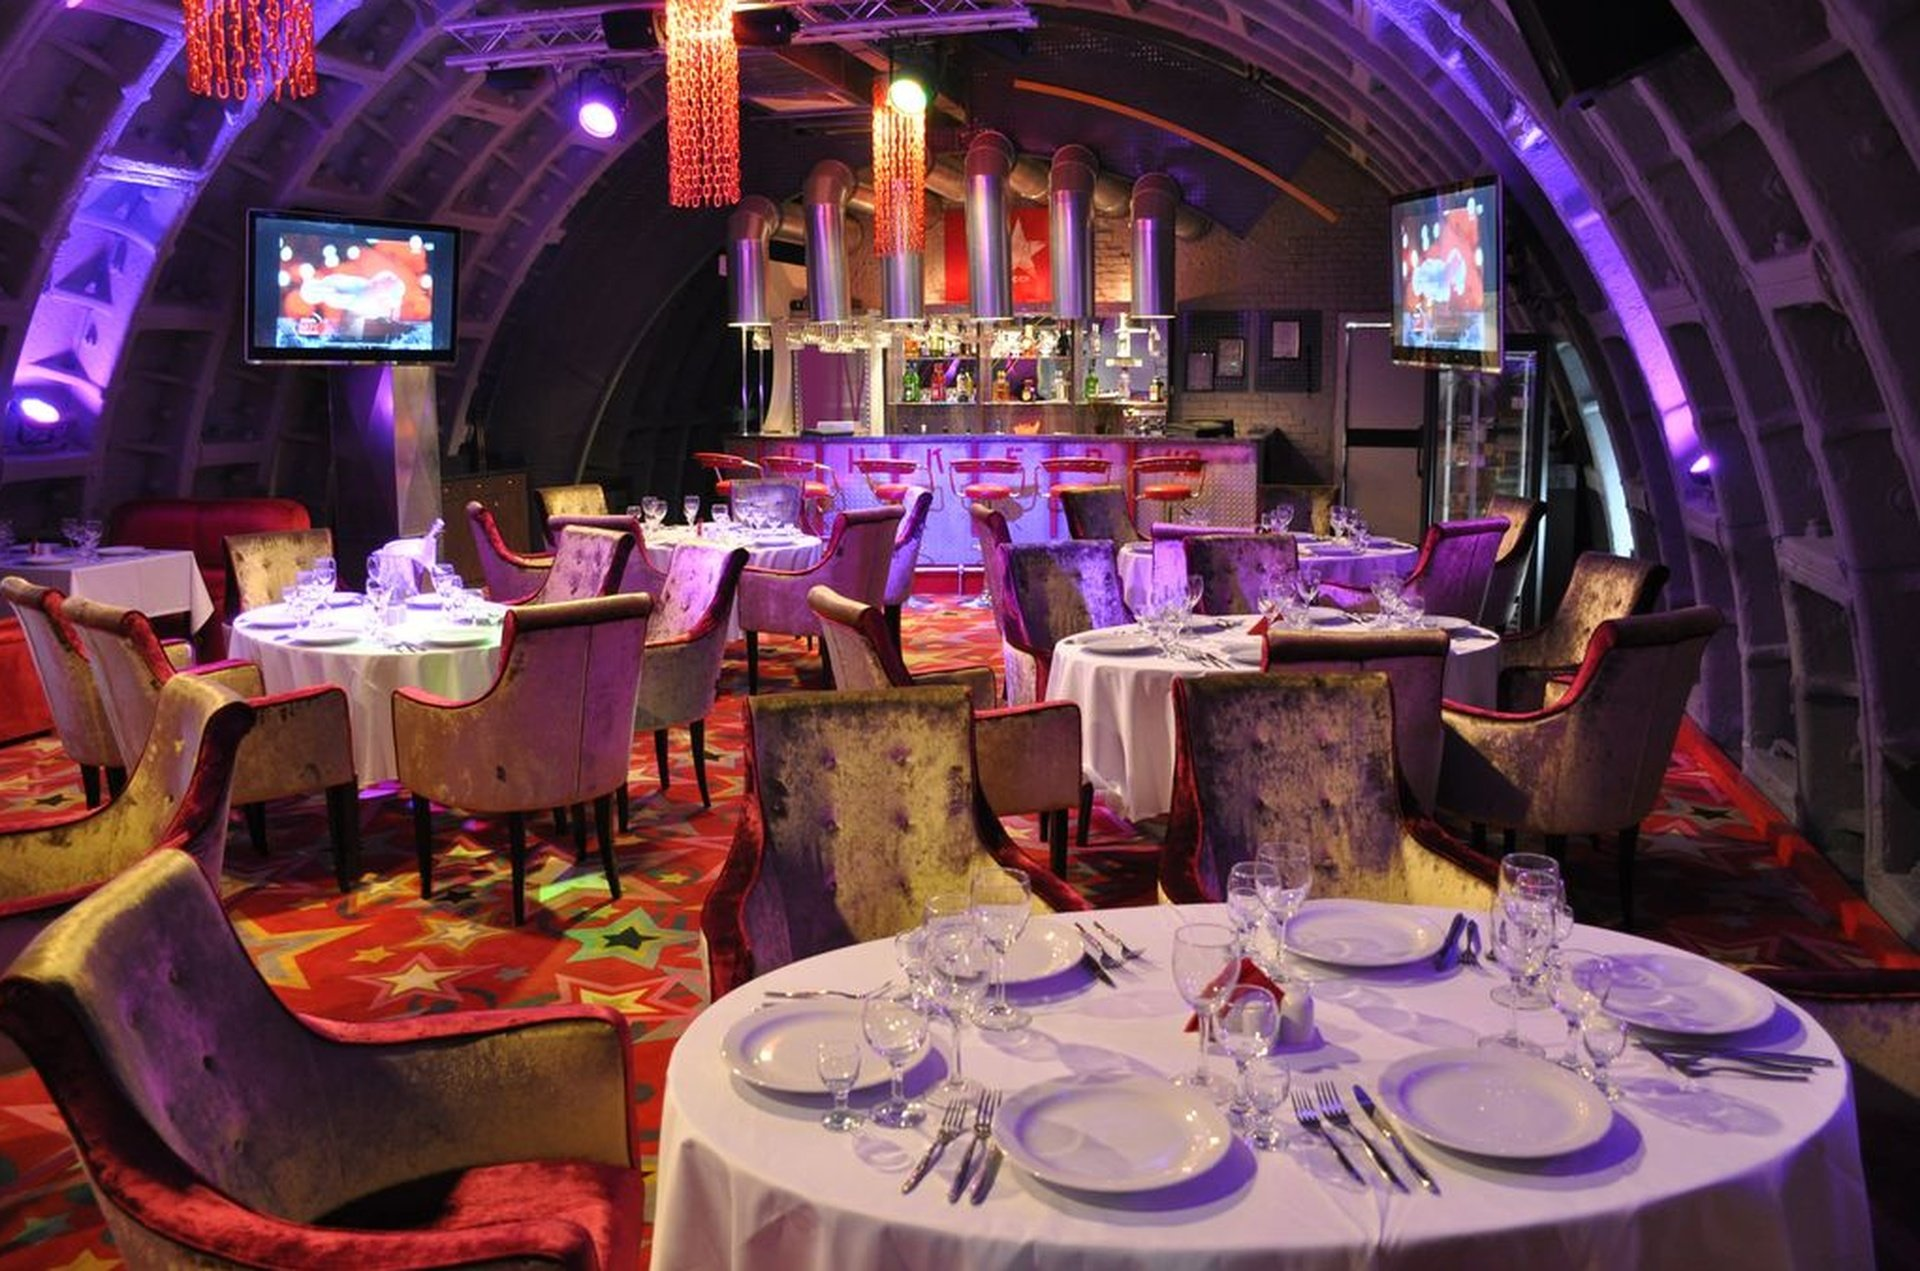 Rest of the World corporate event venues Auditorium Tagansky Bunker 42 - Red Banquet Hall image 0